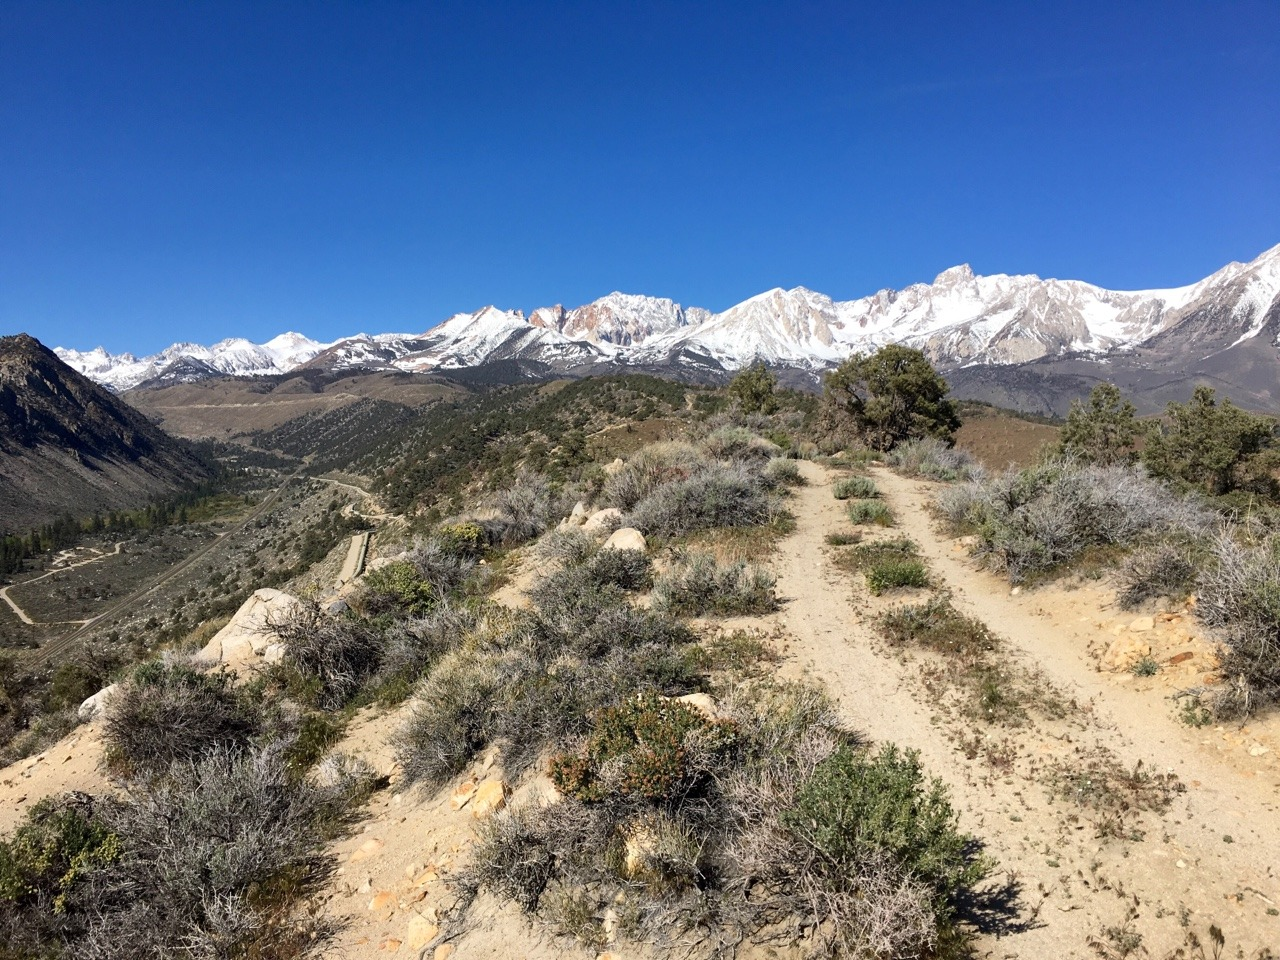 Sierra Nevada Mountains to the west